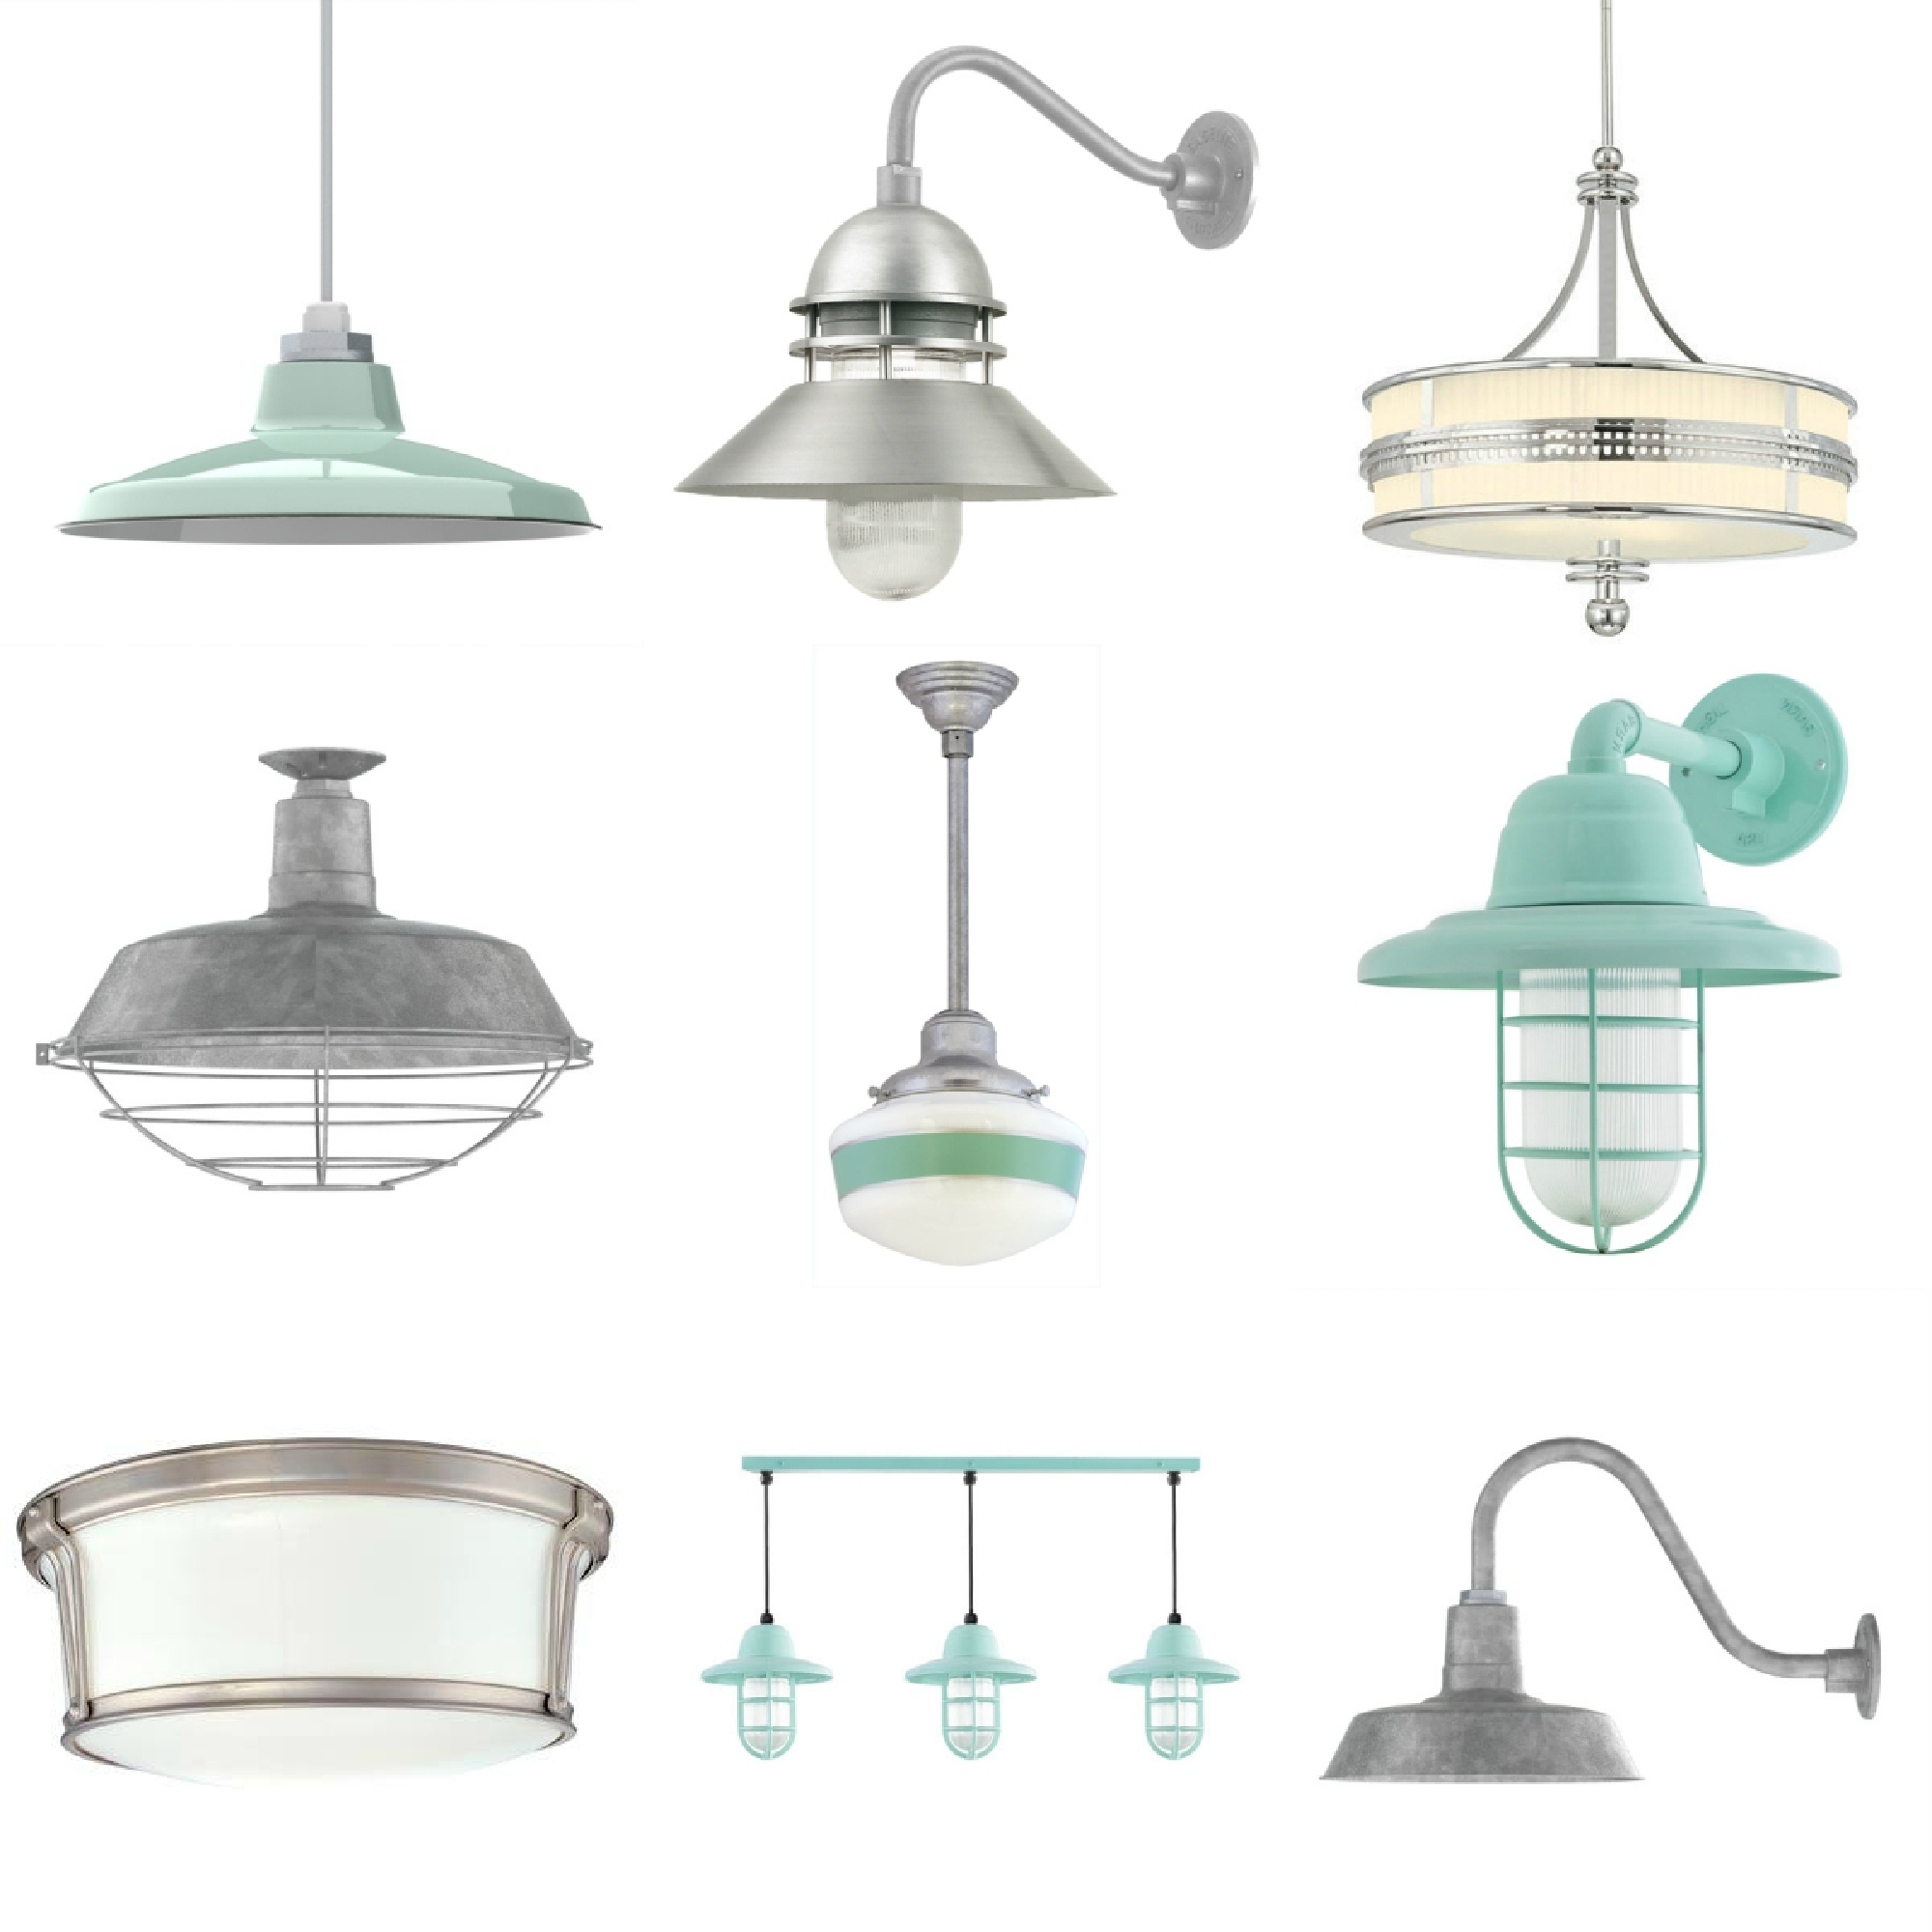 Widely Used Galvanized Outdoor Ceiling Lights Inside Ceiling Lights : Comfy Barn Ceiling Light Fixtures , Antique Barn (View 20 of 20)